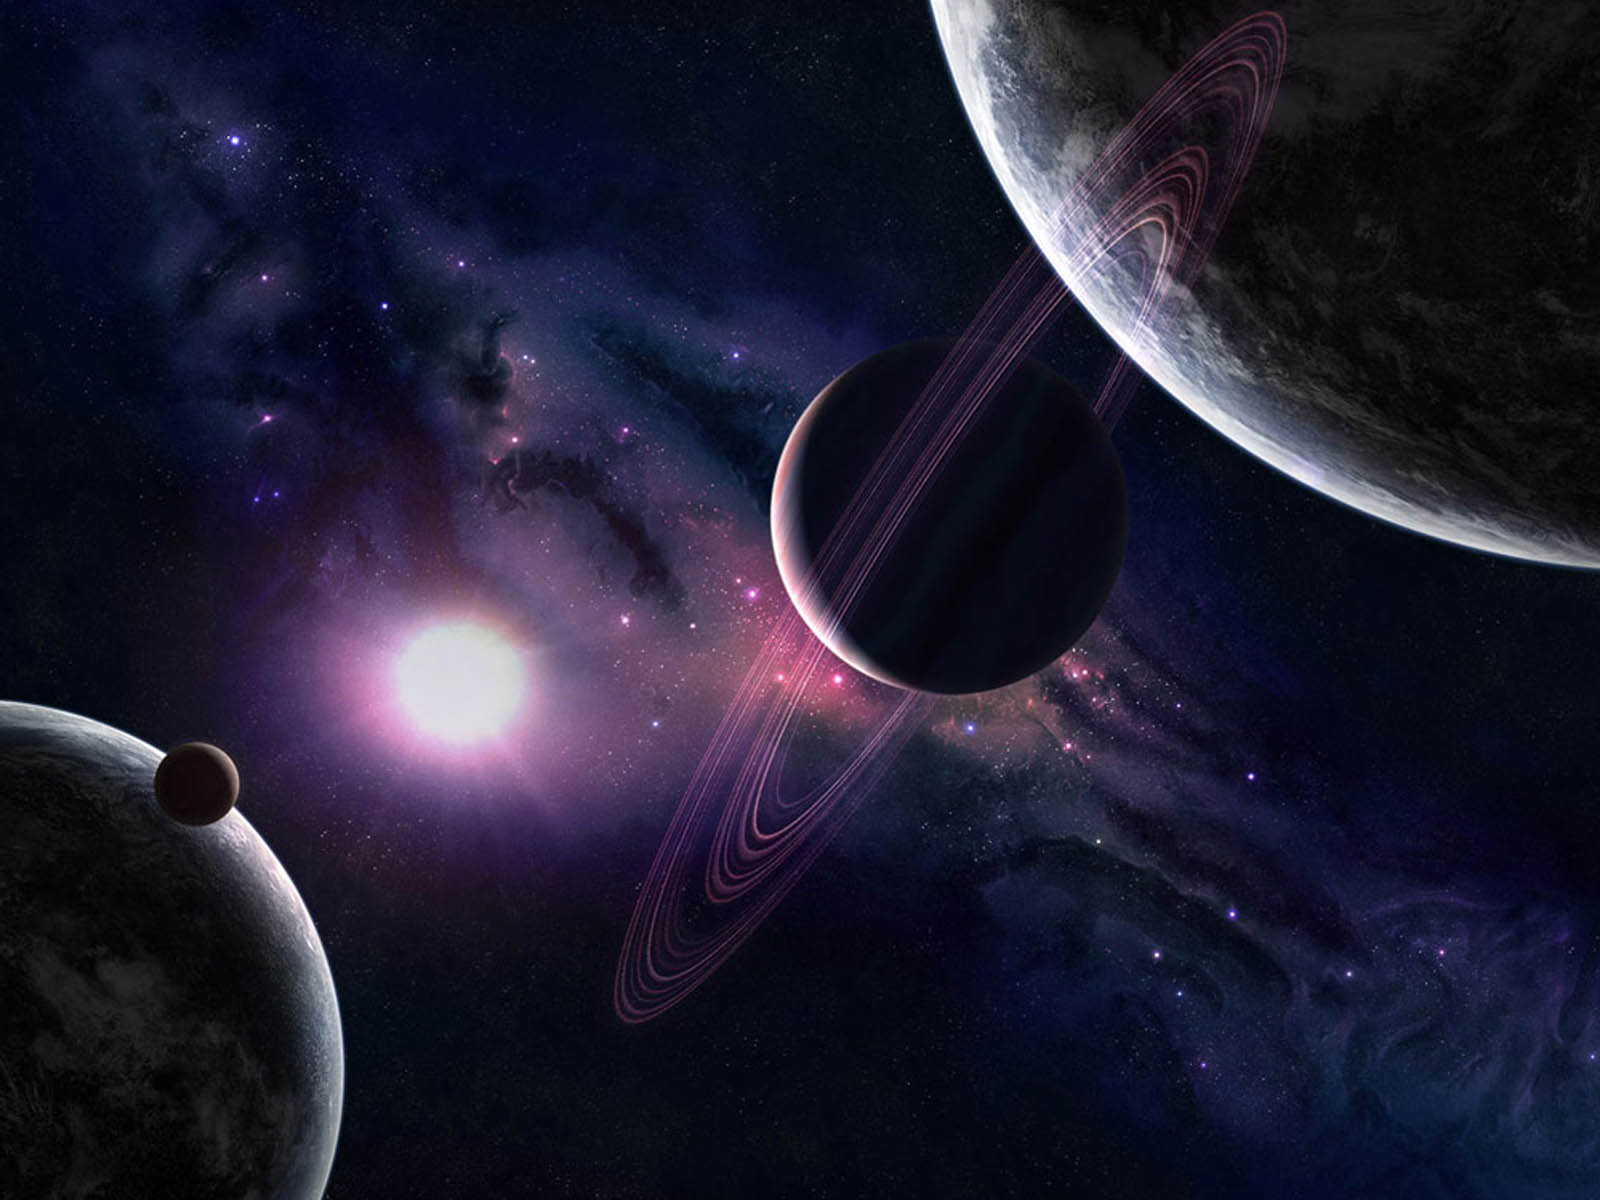 planets solar system wallpaper 1920x1200 - photo #2